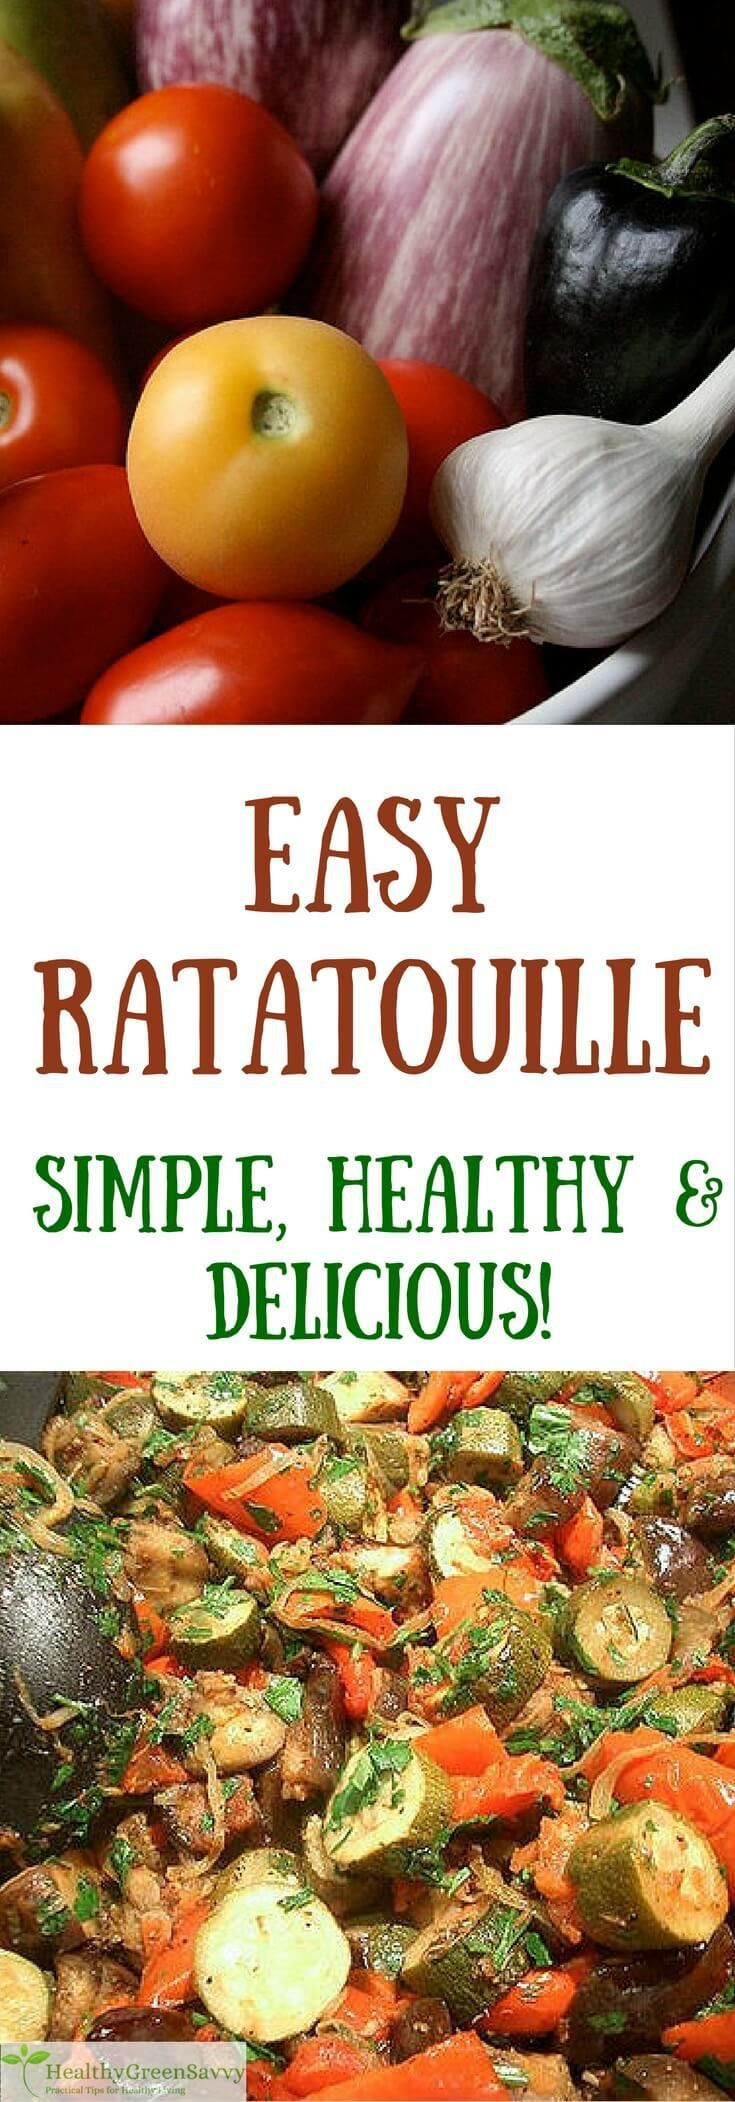 Easy ratatouille recipe! Pared-down ratatouille recipe for cooks in a  hurry -- healthy, quick, and delicious! Click to read more or pin to save for later!